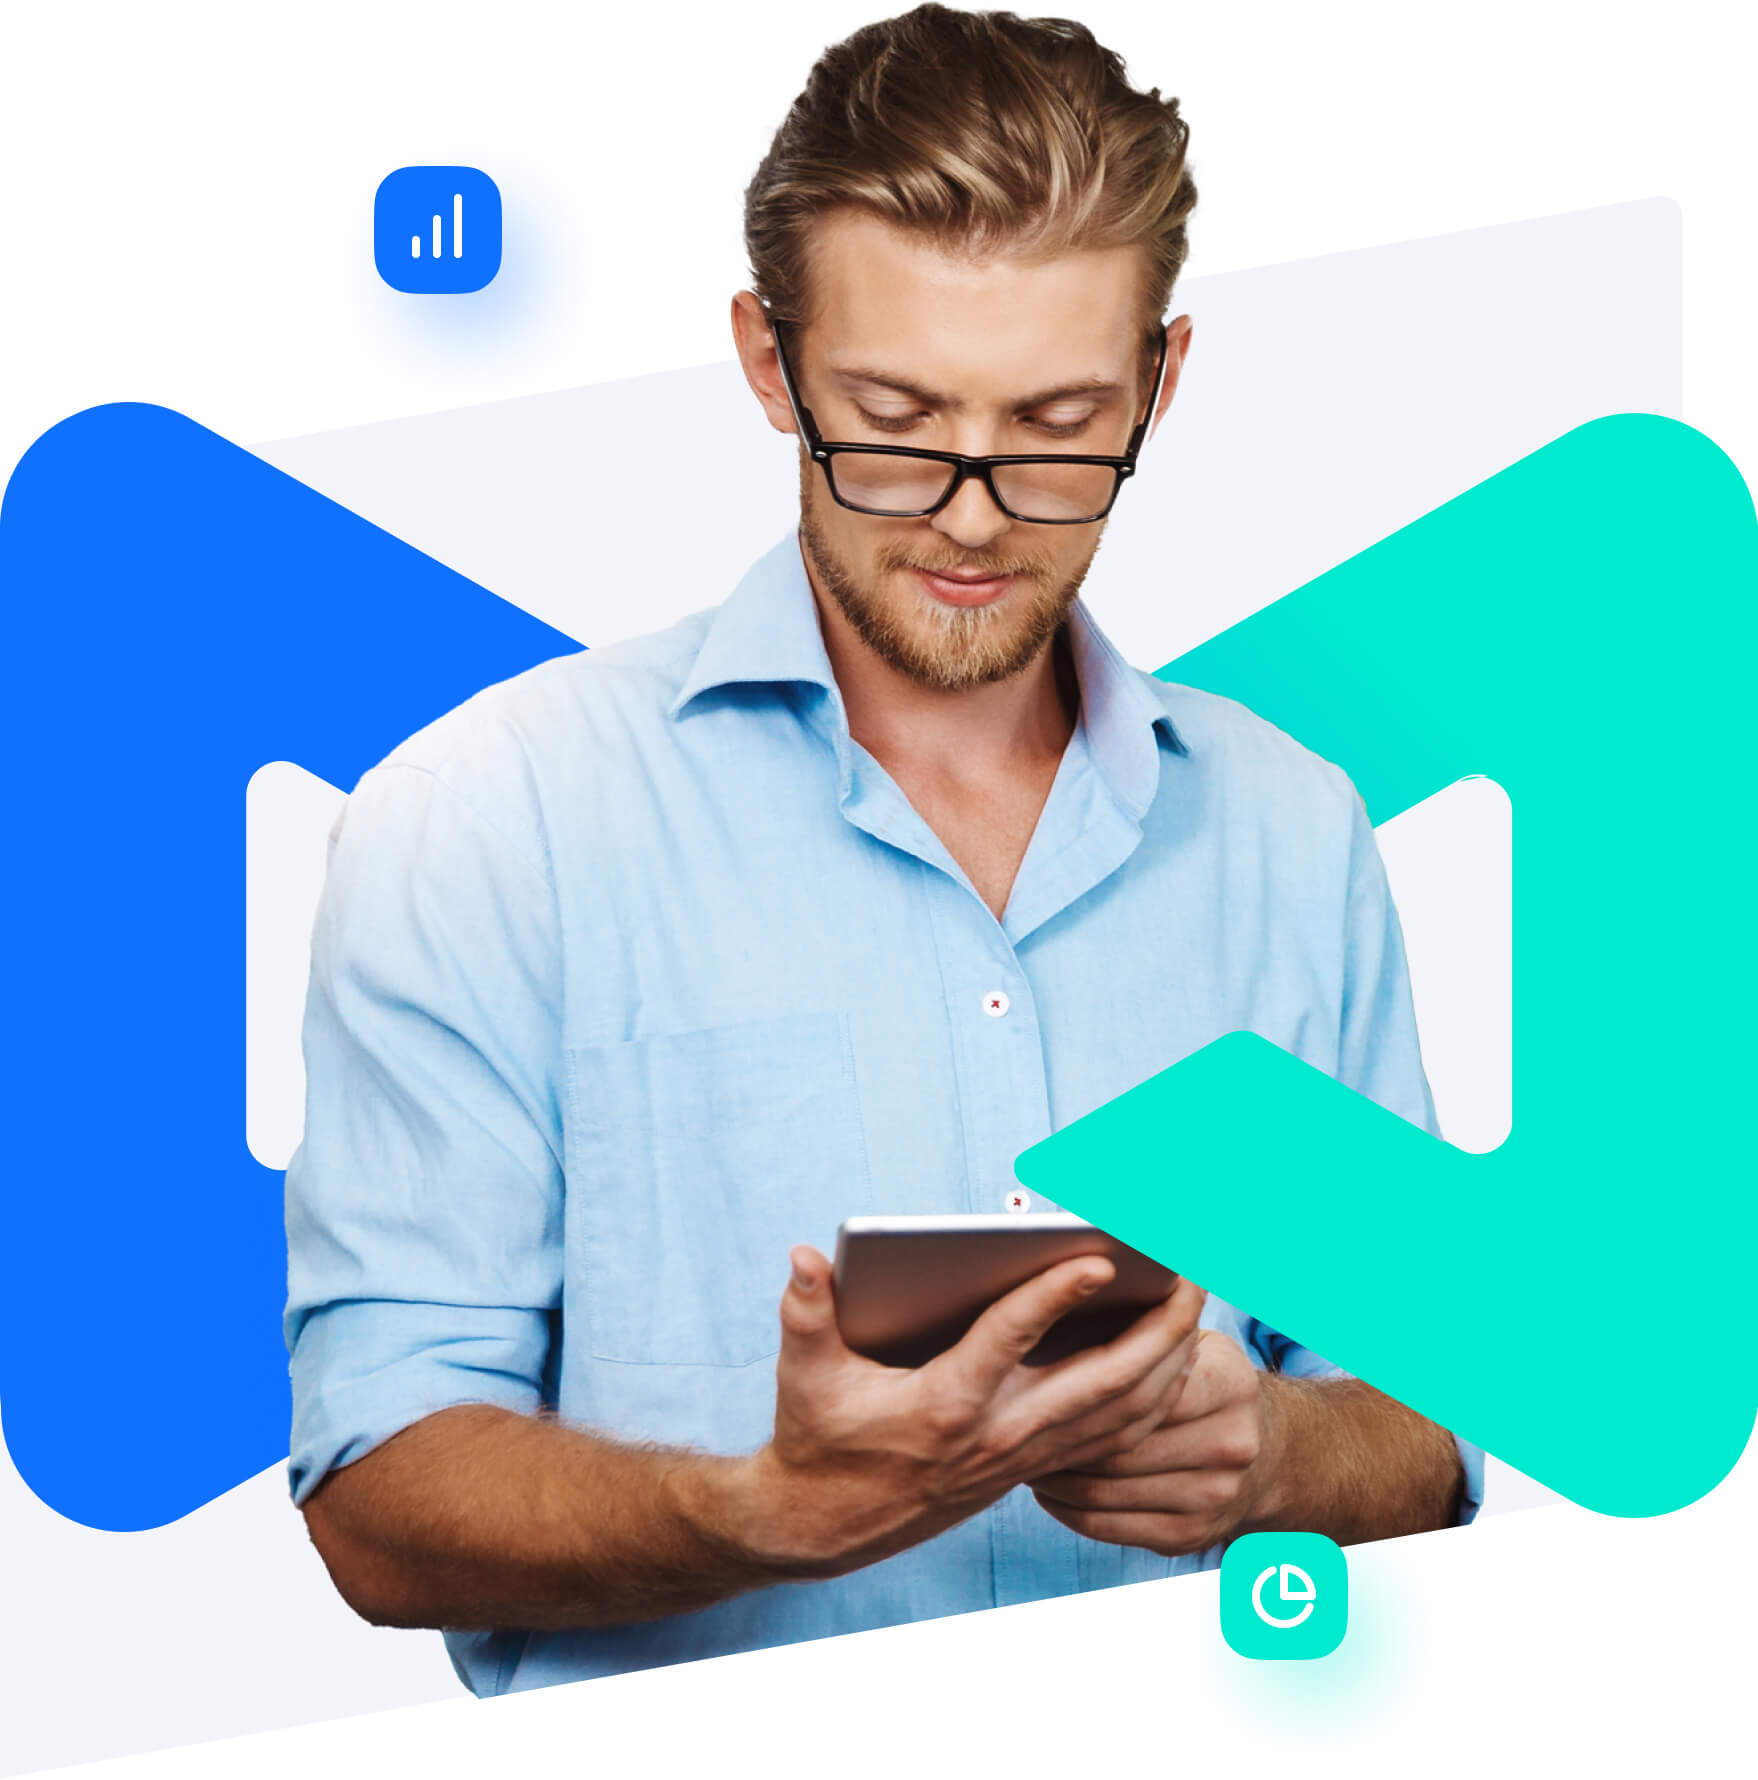 man with glasses on looking at his ipad to check his accounting, with the project alfred logo wrapping around him slightly.